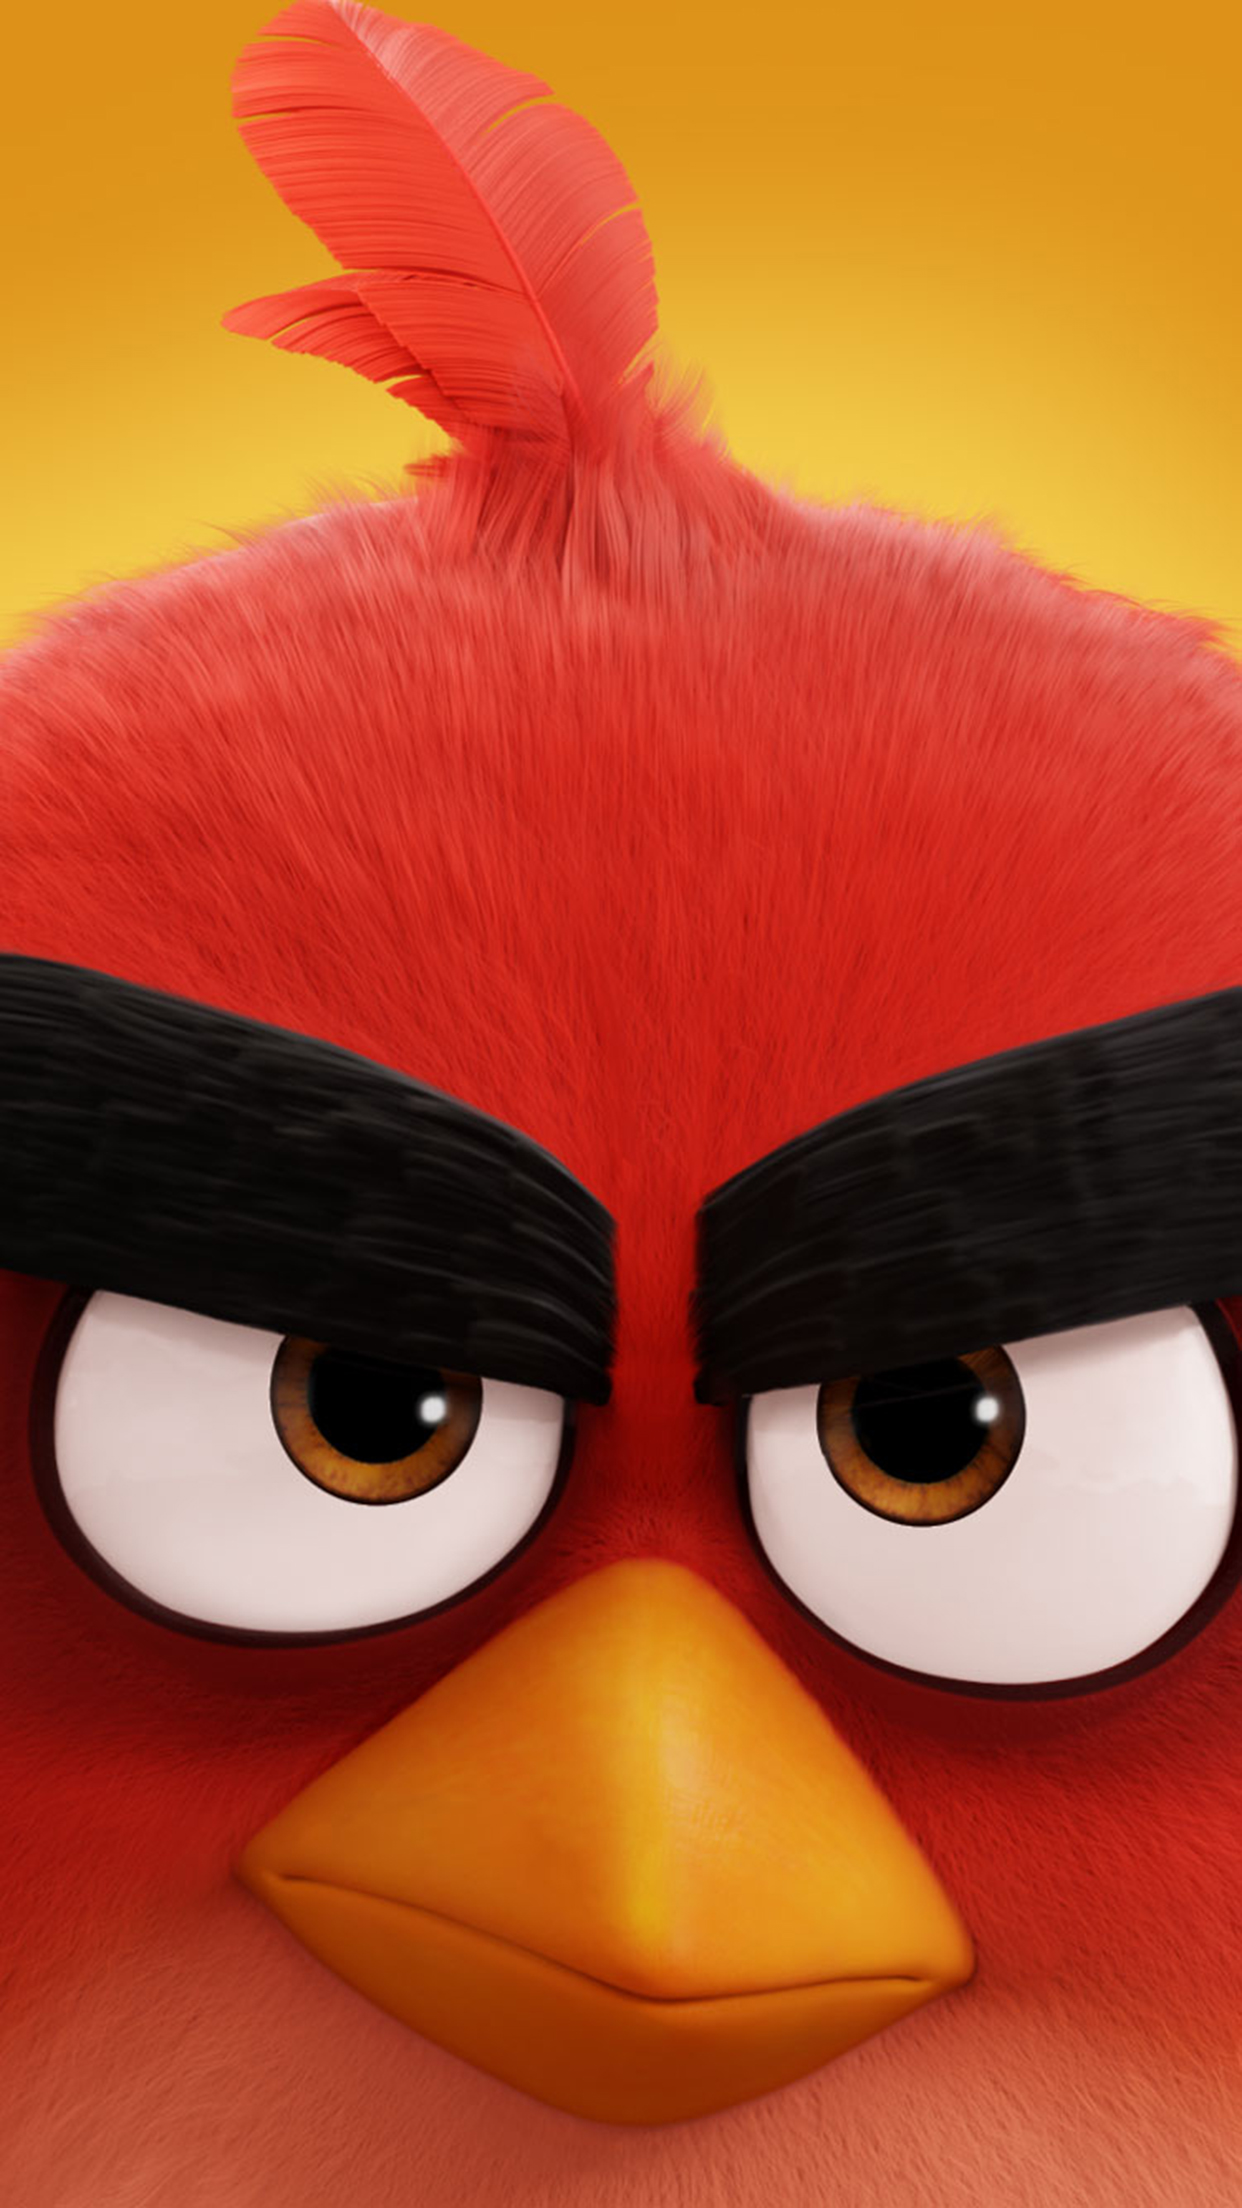 Angry Bird Red Wallpaper For Iphone X 8 7 6 Free Download On